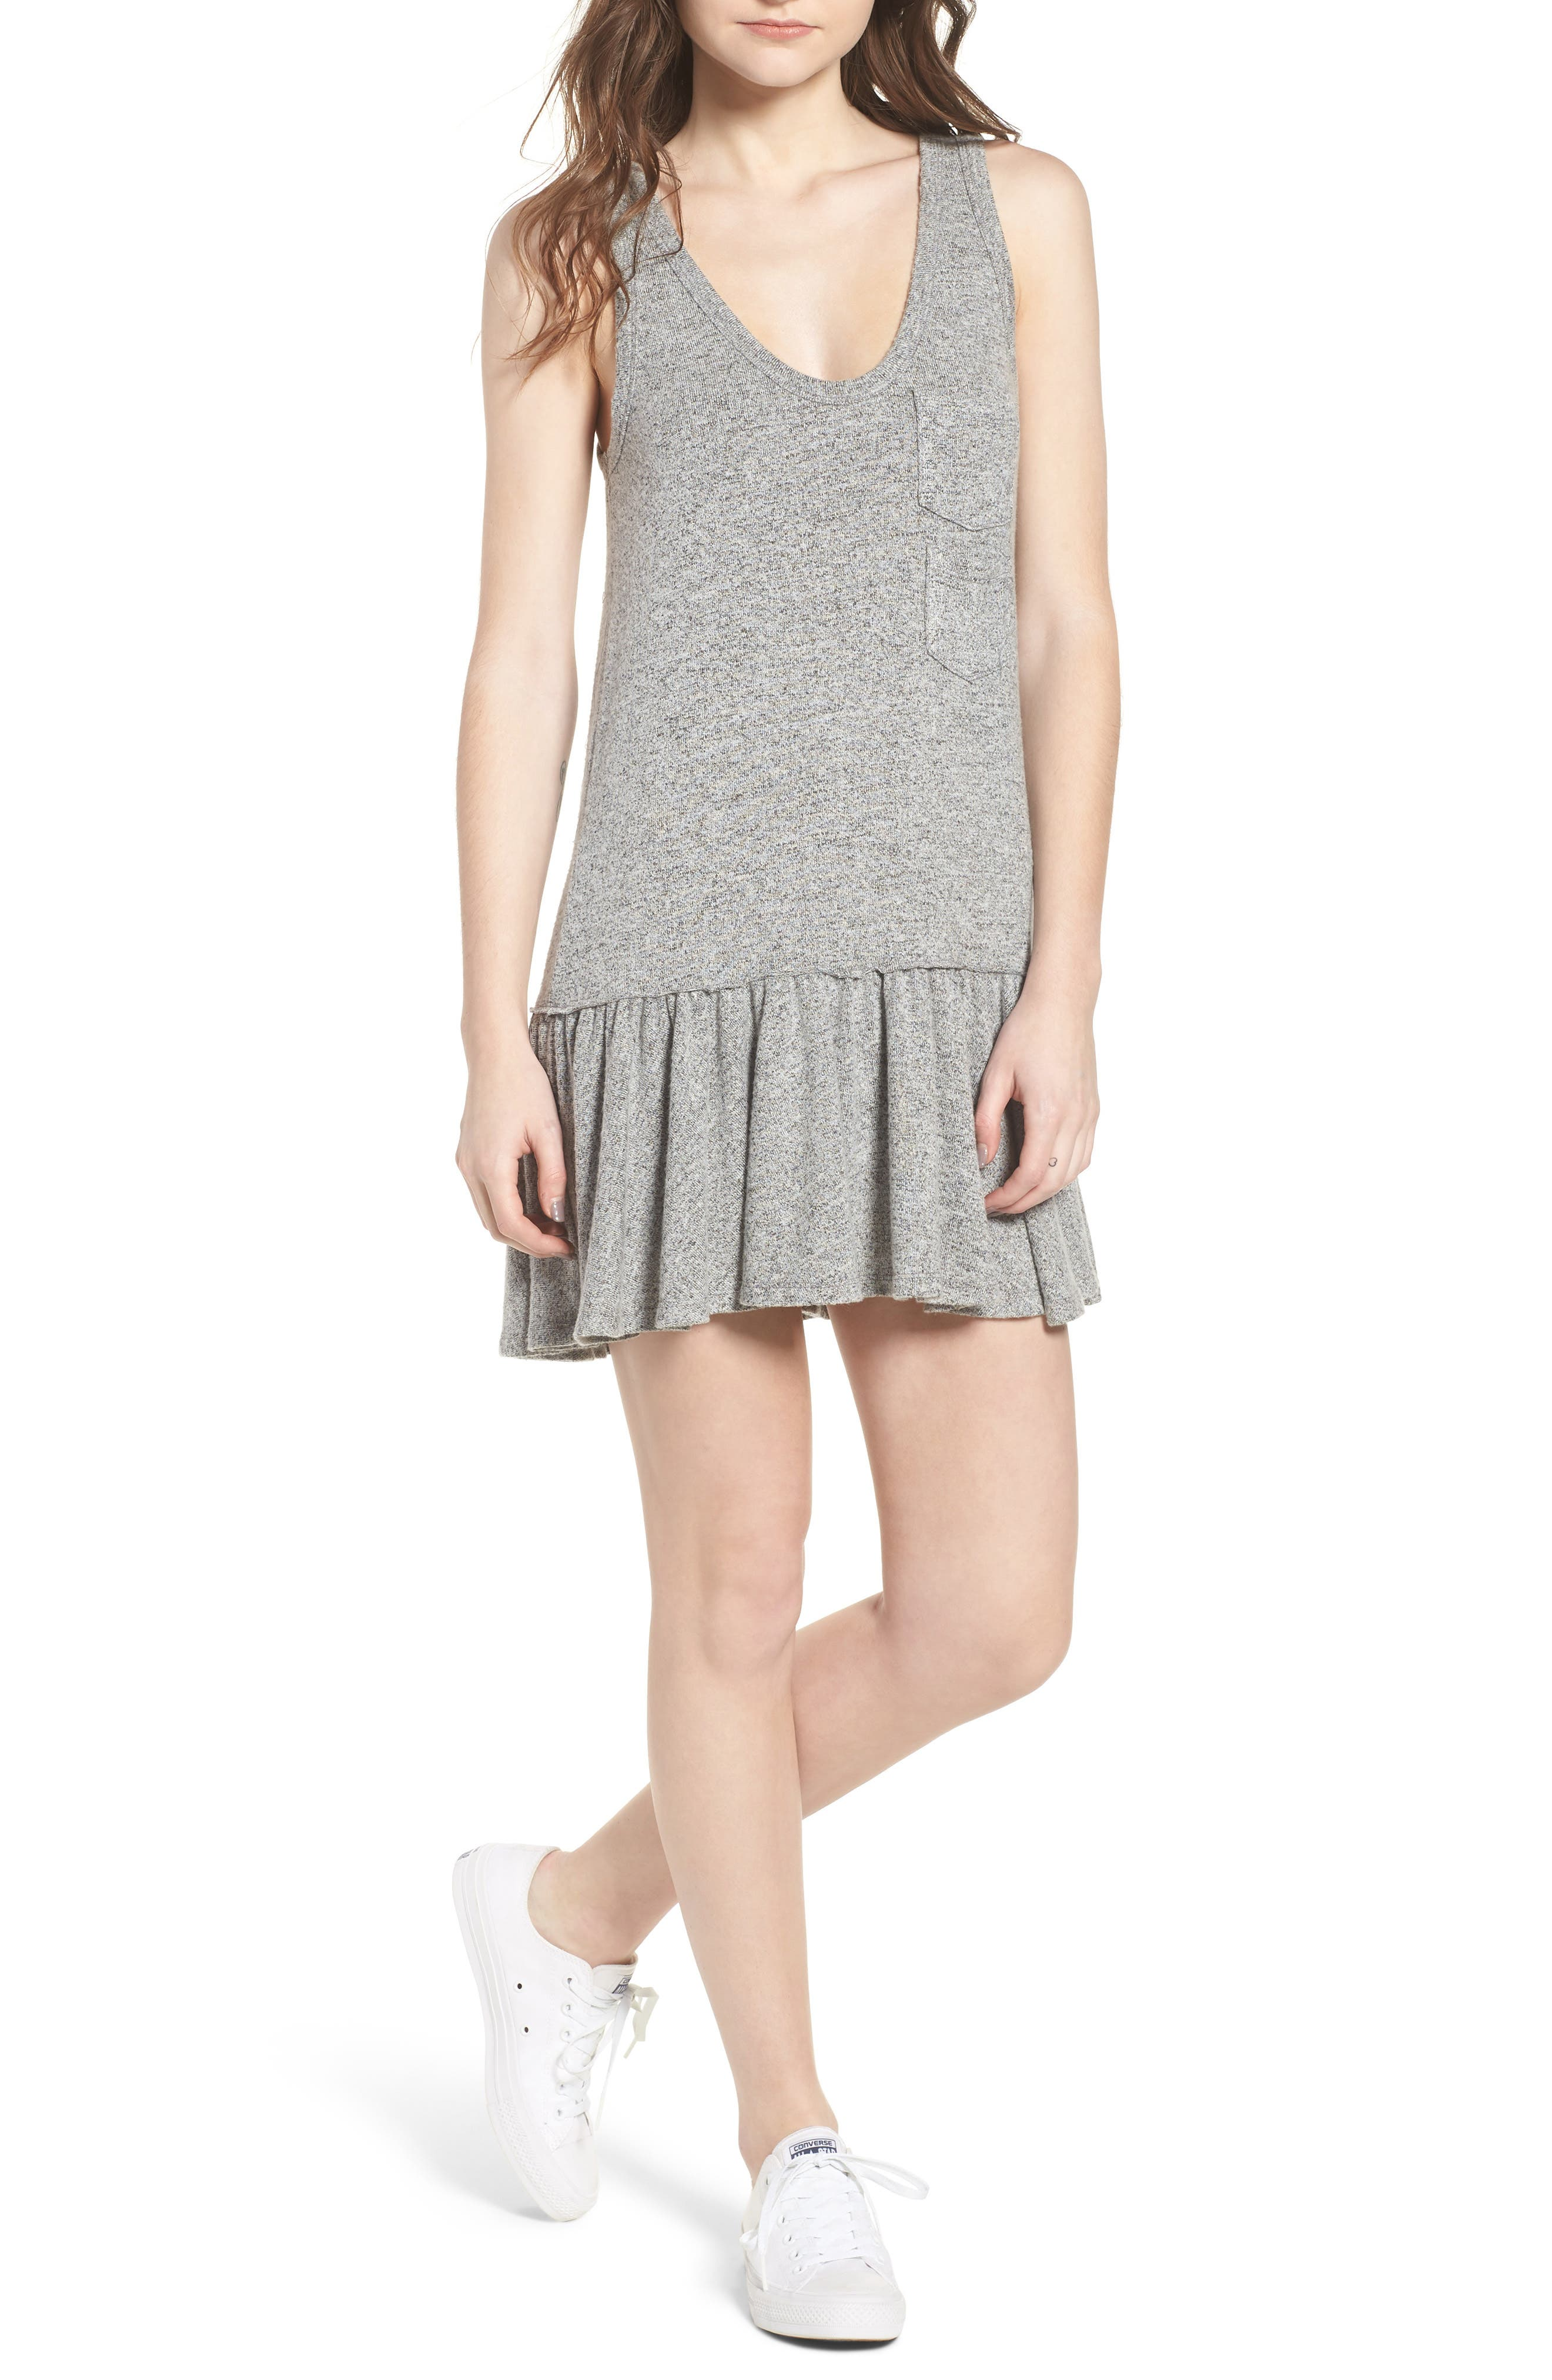 Summer in the City Tank Dress,                         Main,                         color, Heather